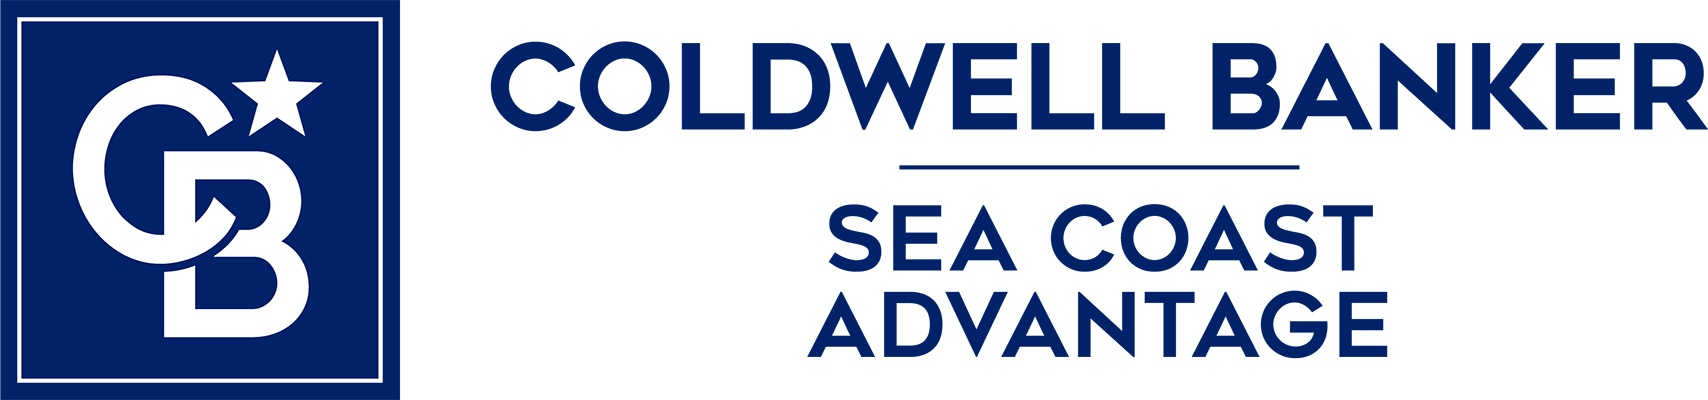 Thompson Lasley Group - Coldwell Banker Sea Coast Advantage Logo